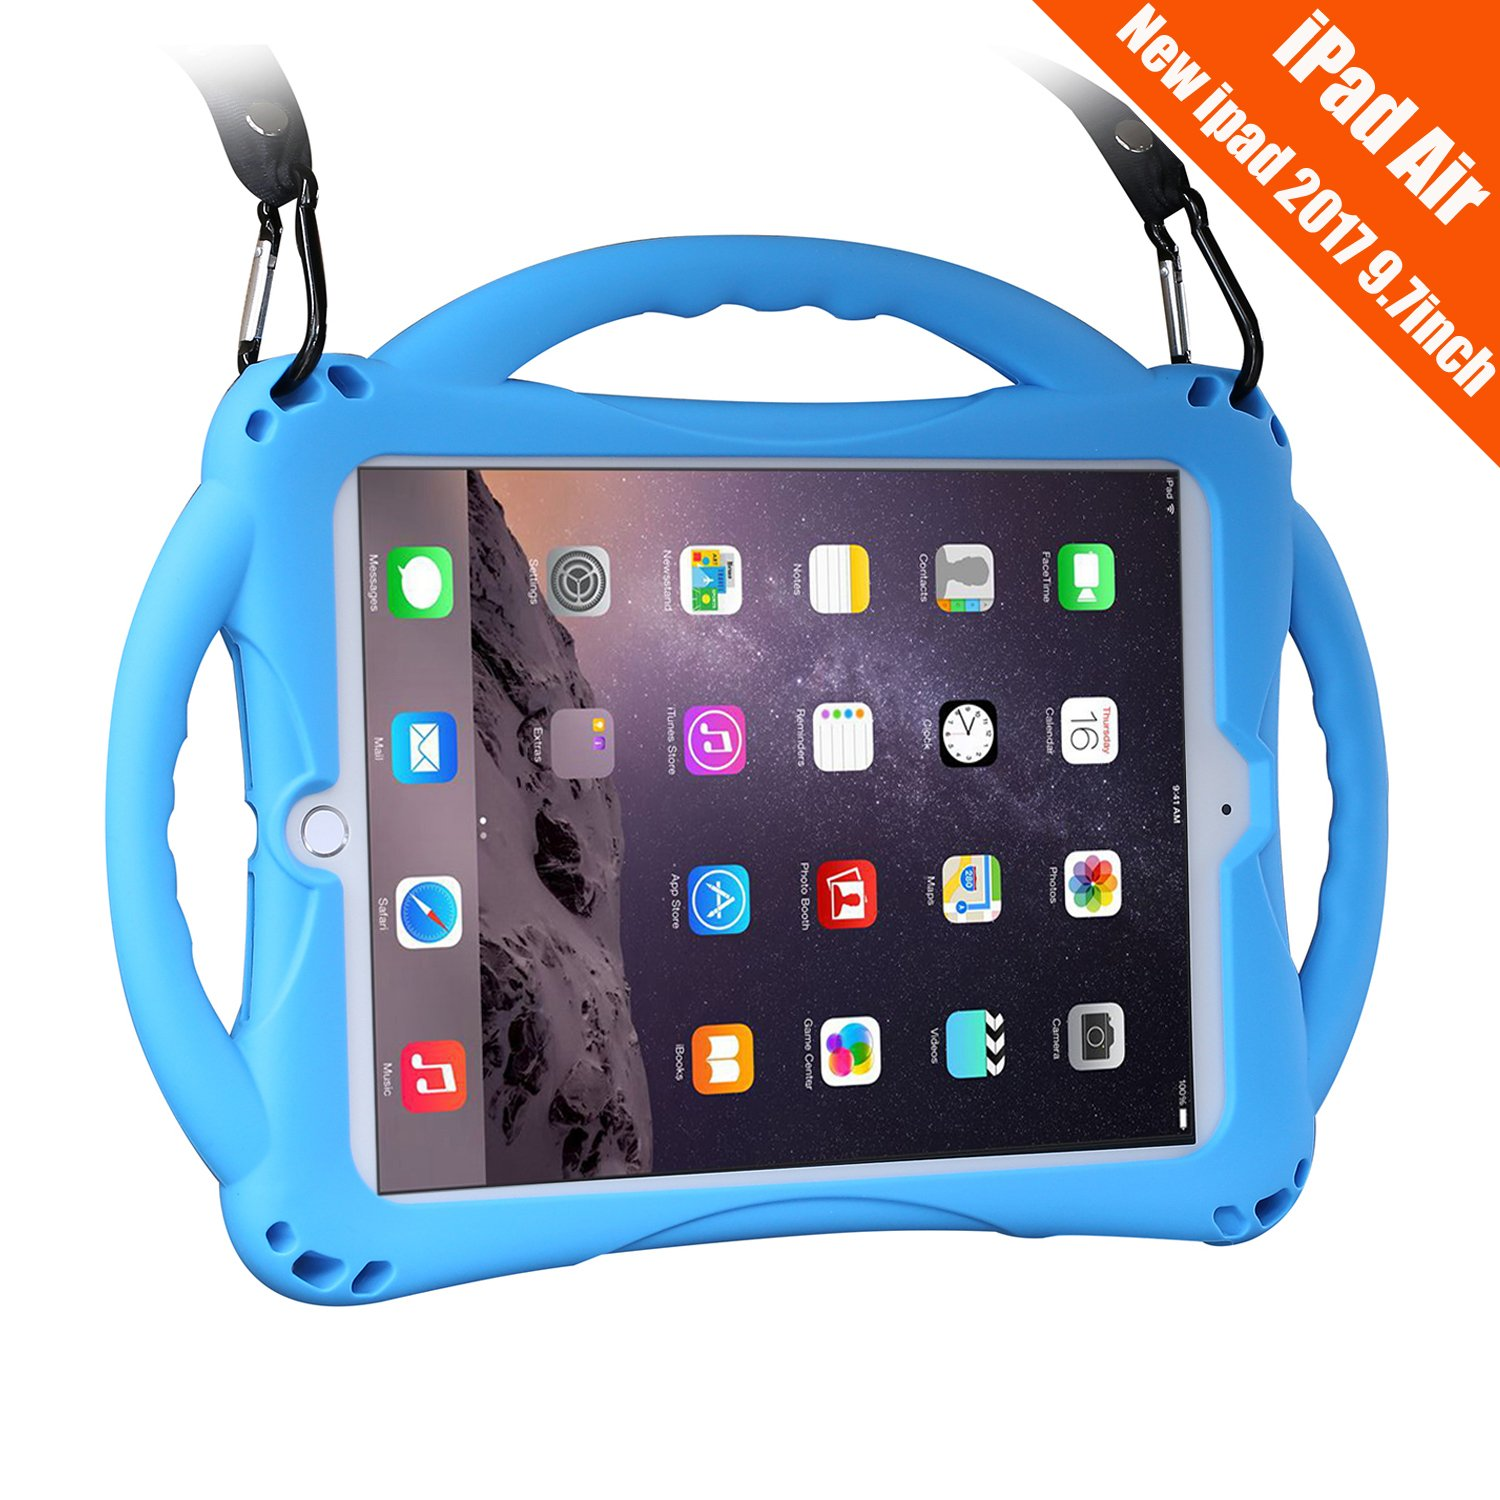 New iPad 2017/2018 9.7 inch Case/iPad Air Case, TopEsct Shockproof Silicone Handle Stand Case Cover&(Tempered Glass Screen Protector) For Apple New iPad 9.7inch(2017/2018 Version) and iPad Air(Blue)